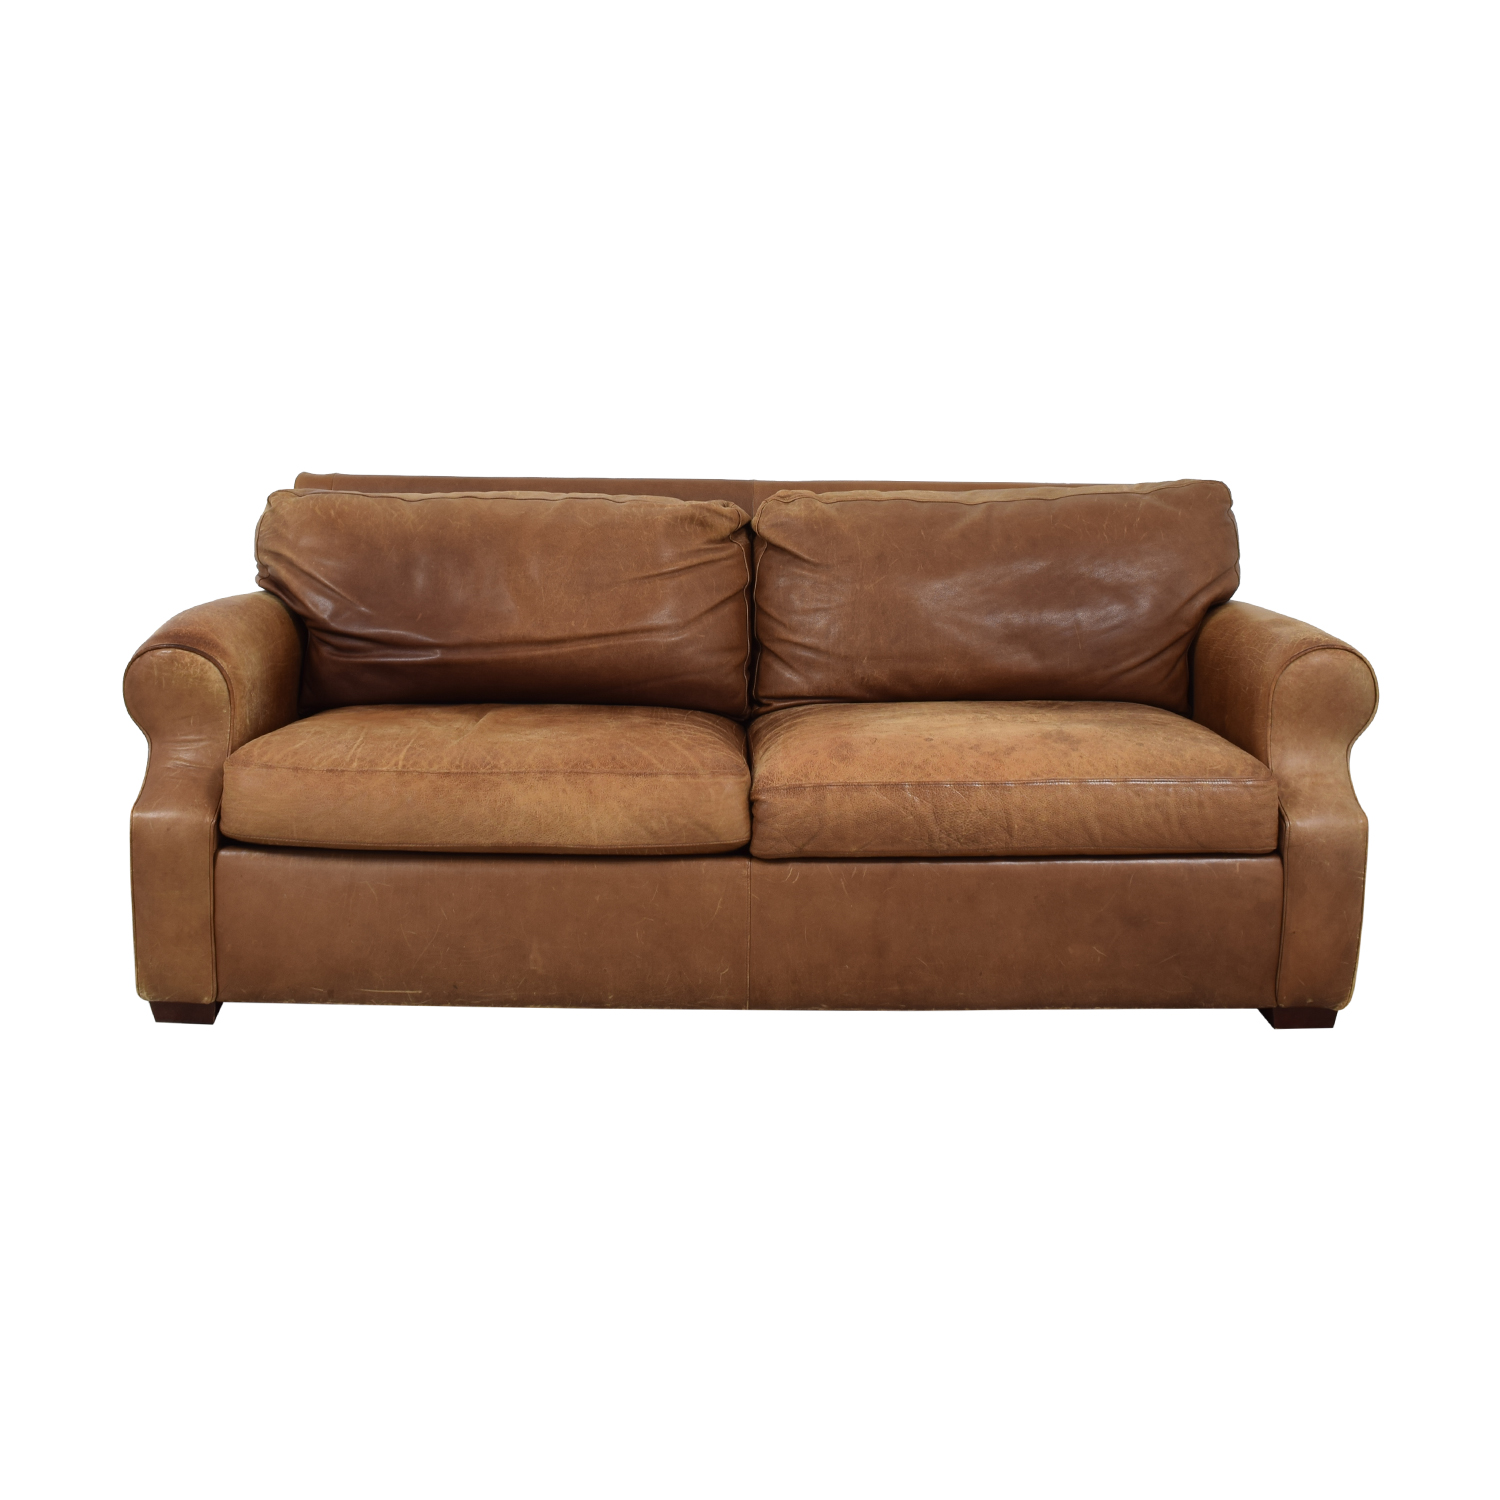 American Leather Sofa American Leather